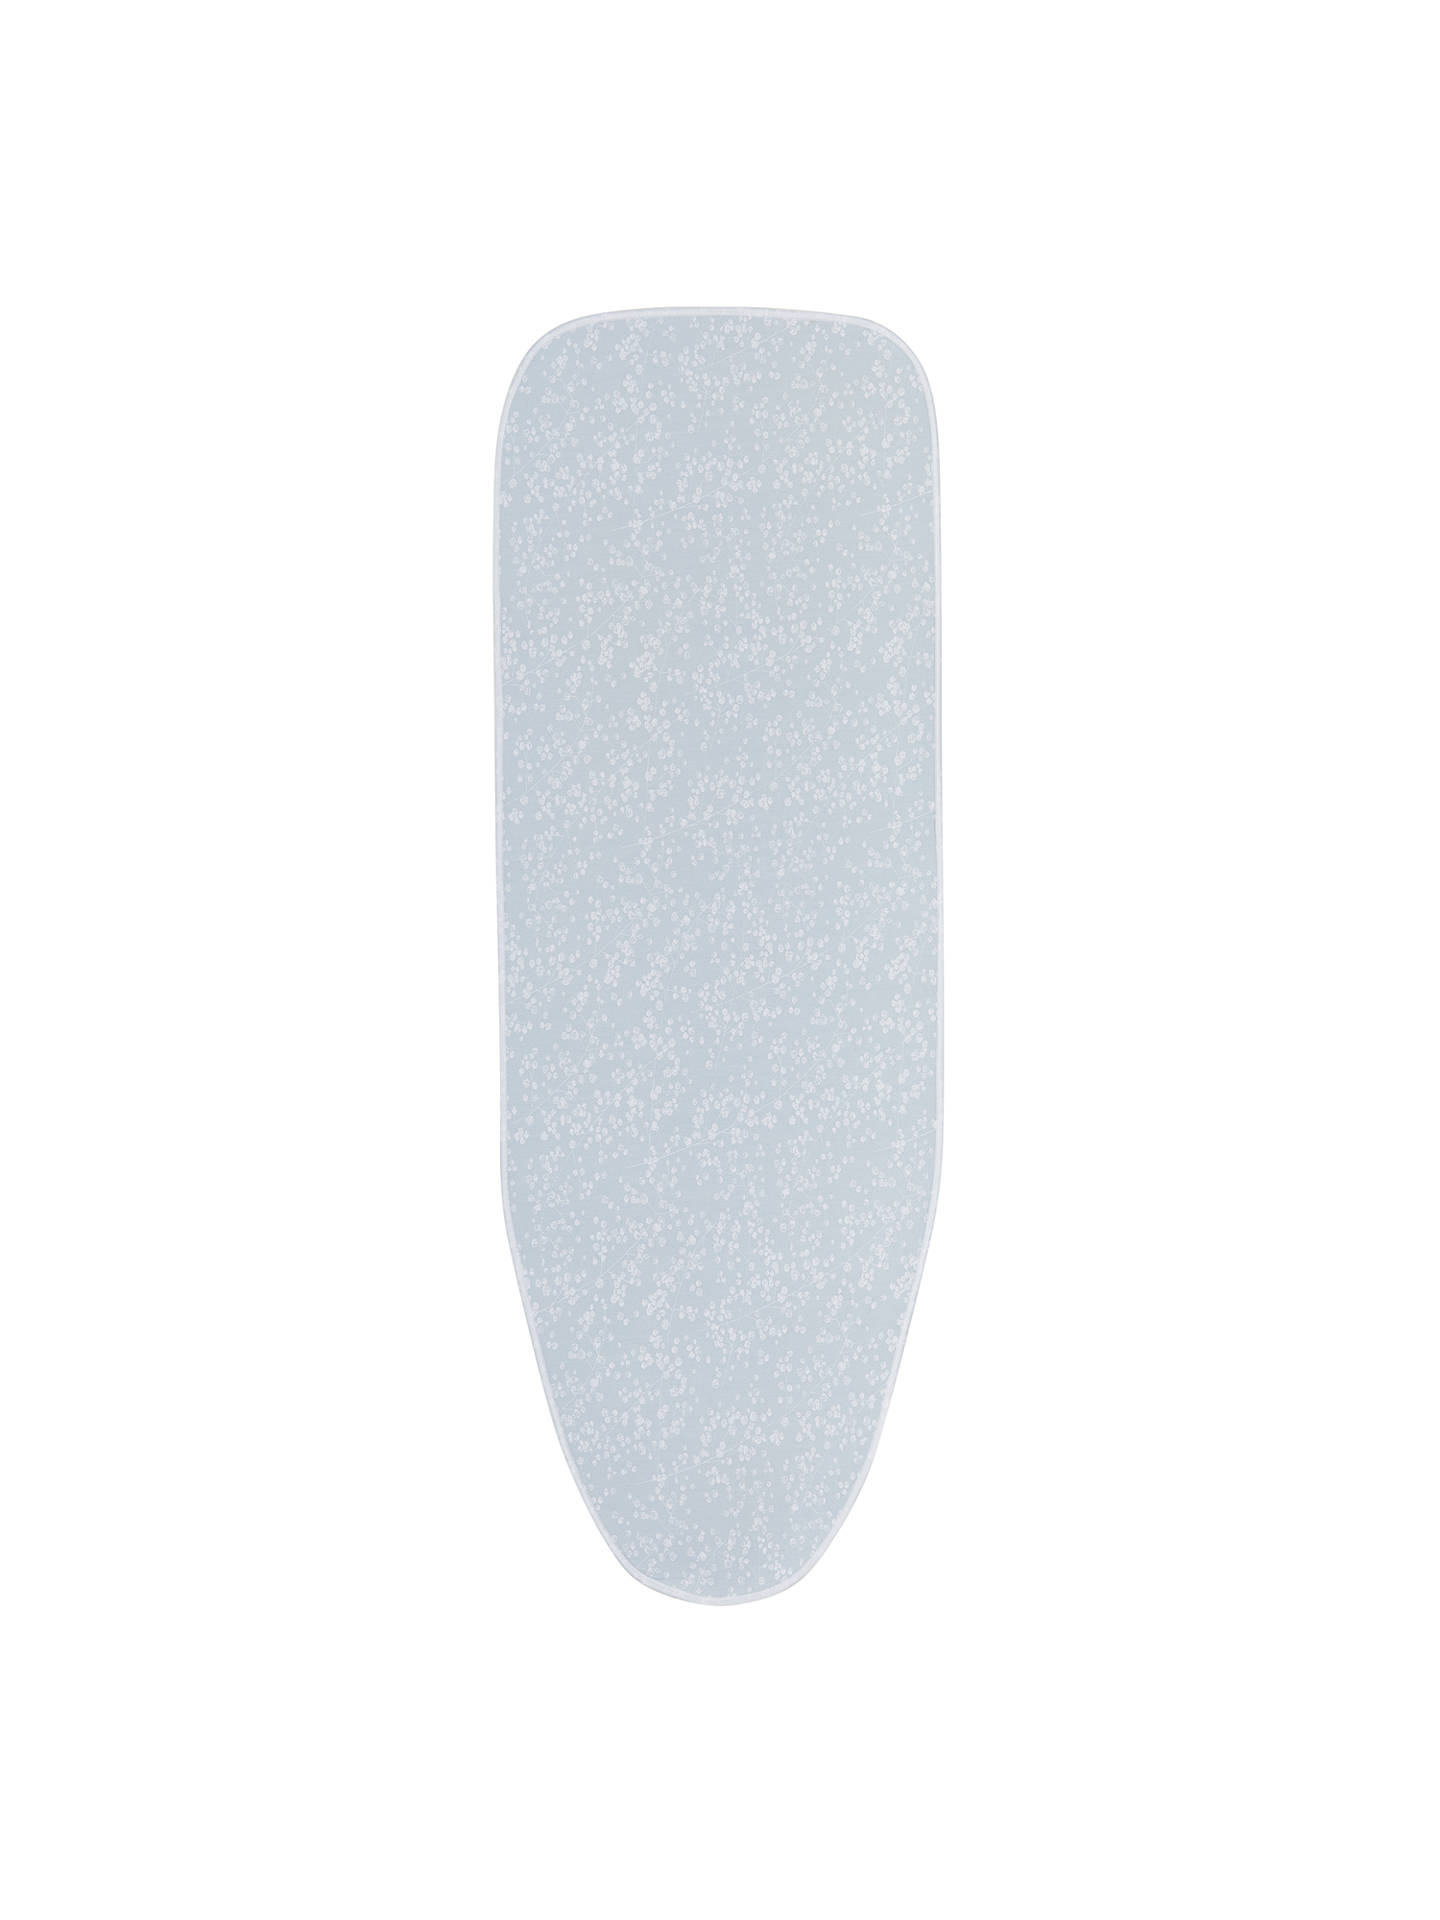 BuyJohn Lewis & Partners Floral Ironing Board Cover, Small-Medium, 124 x 45cm Online at johnlewis.com